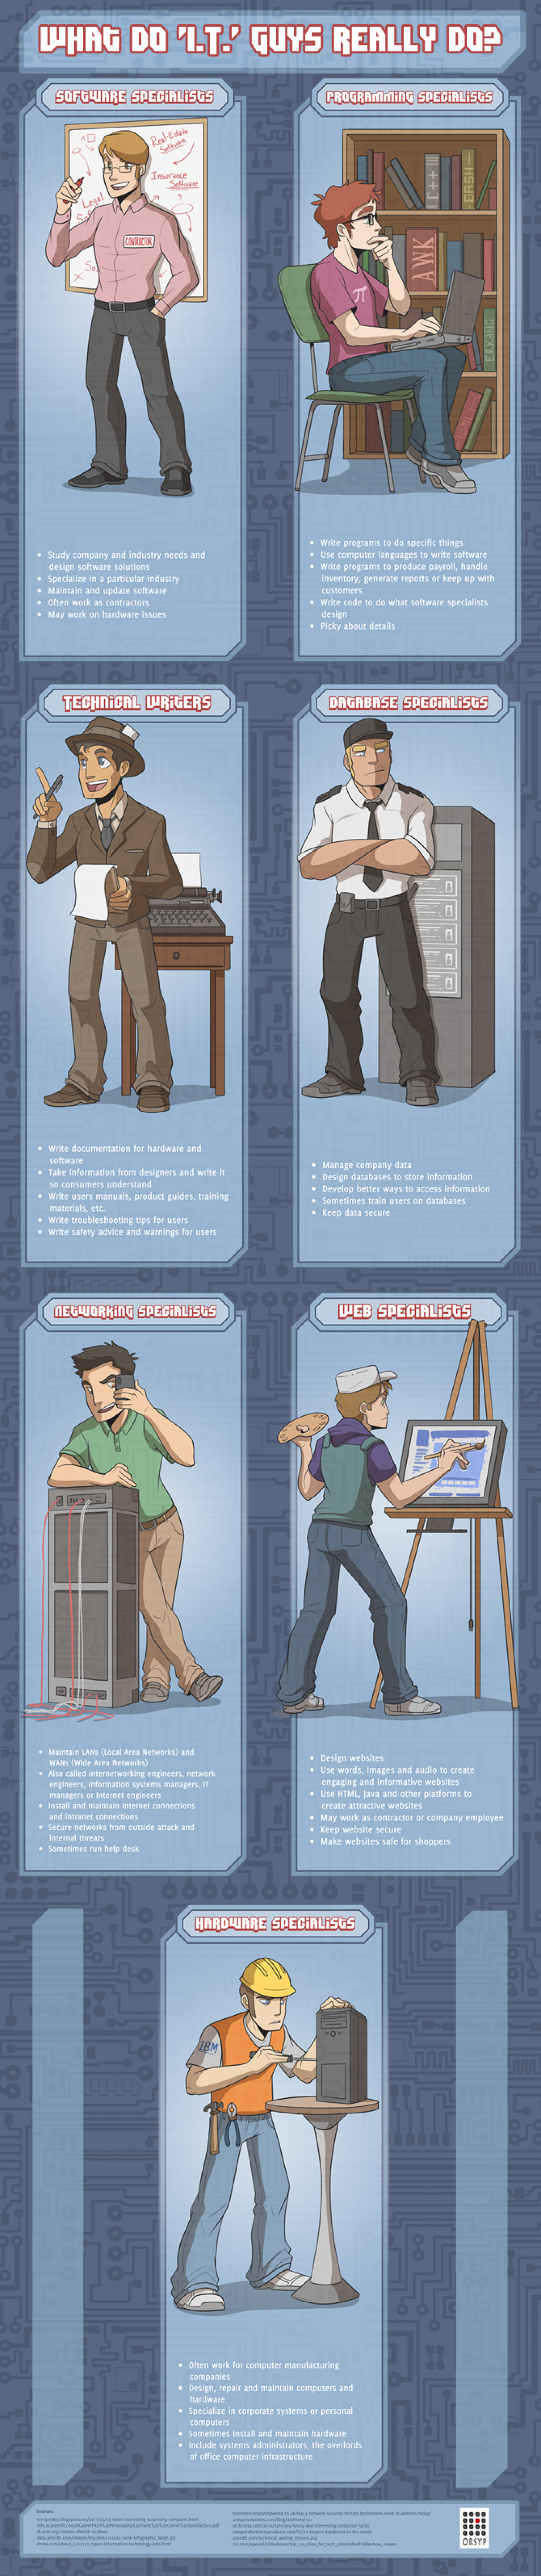 What do IT guys do all day? Infographic